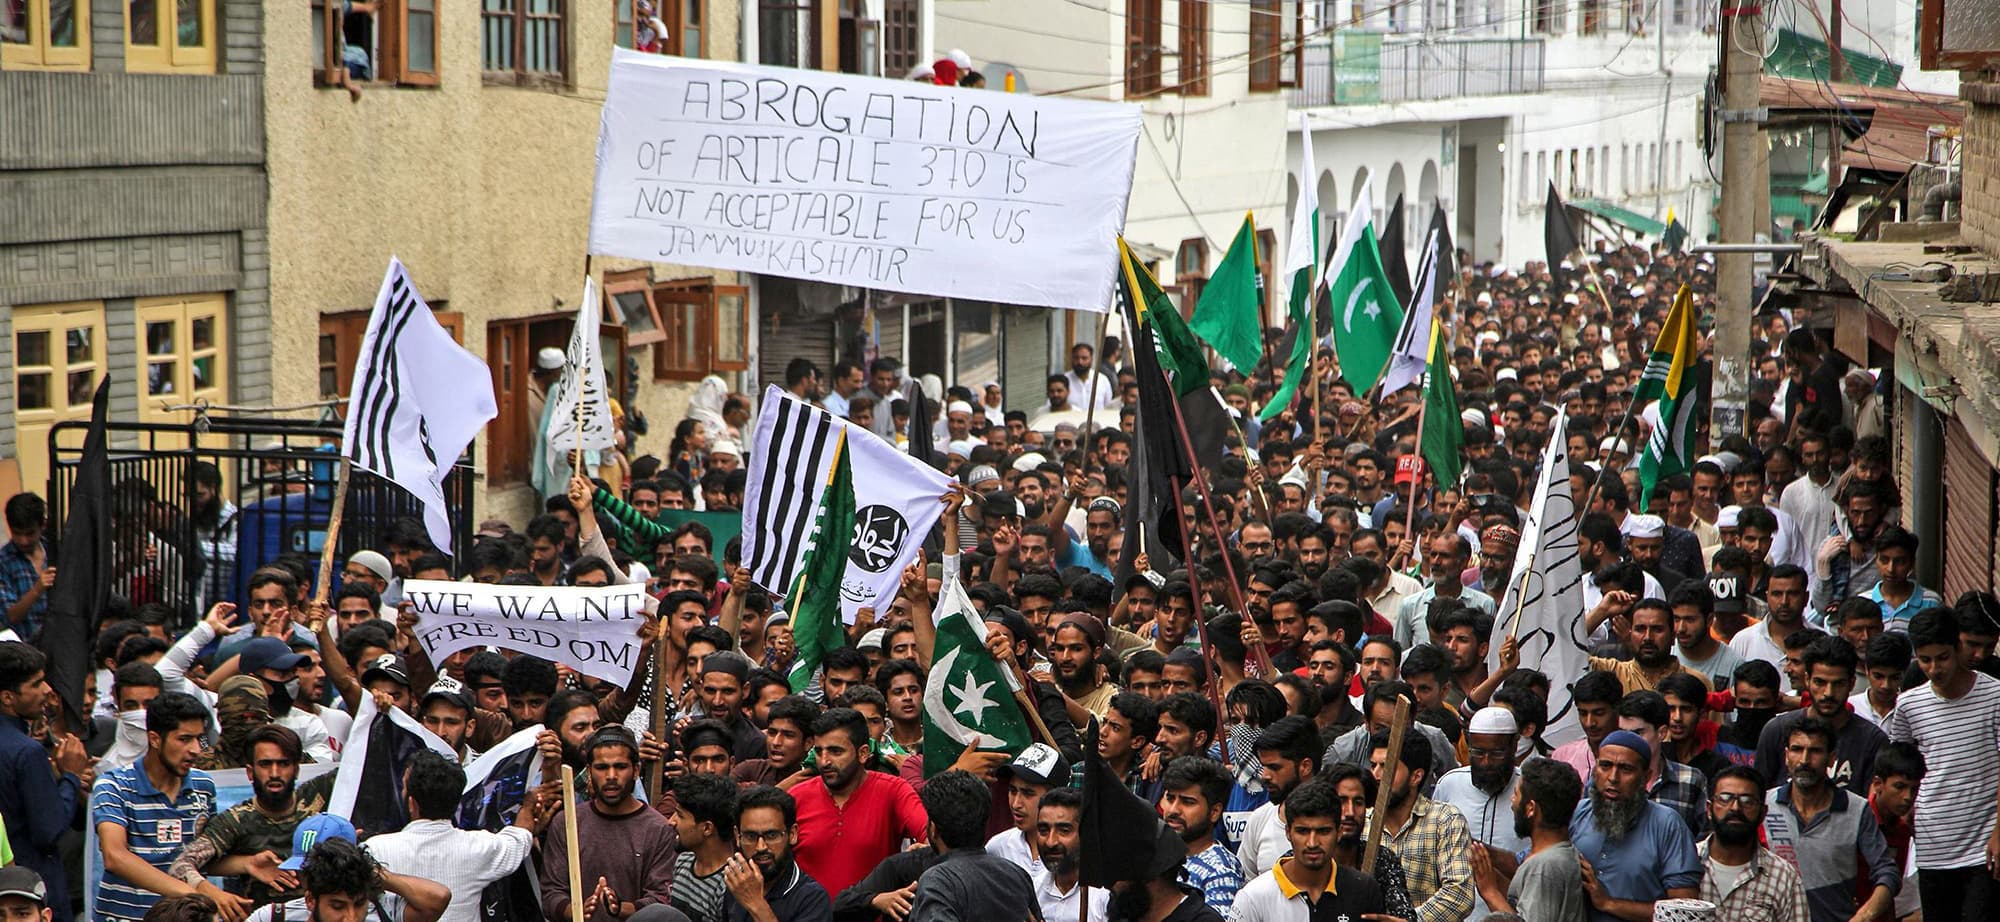 In this photo taken on August 9, 2019, Kashmiri Muslims shout pro-freedom slogans during a protest in Srinagar. - Big queues formed in Indian-administered Kashmir's main city on August 10 outside cash machines and food stores as authorities eased a crippling curfew to let the Himalayan region prepare for a major Muslim festival, residents said. (Photo by STR / AFP) — AFP or licensors